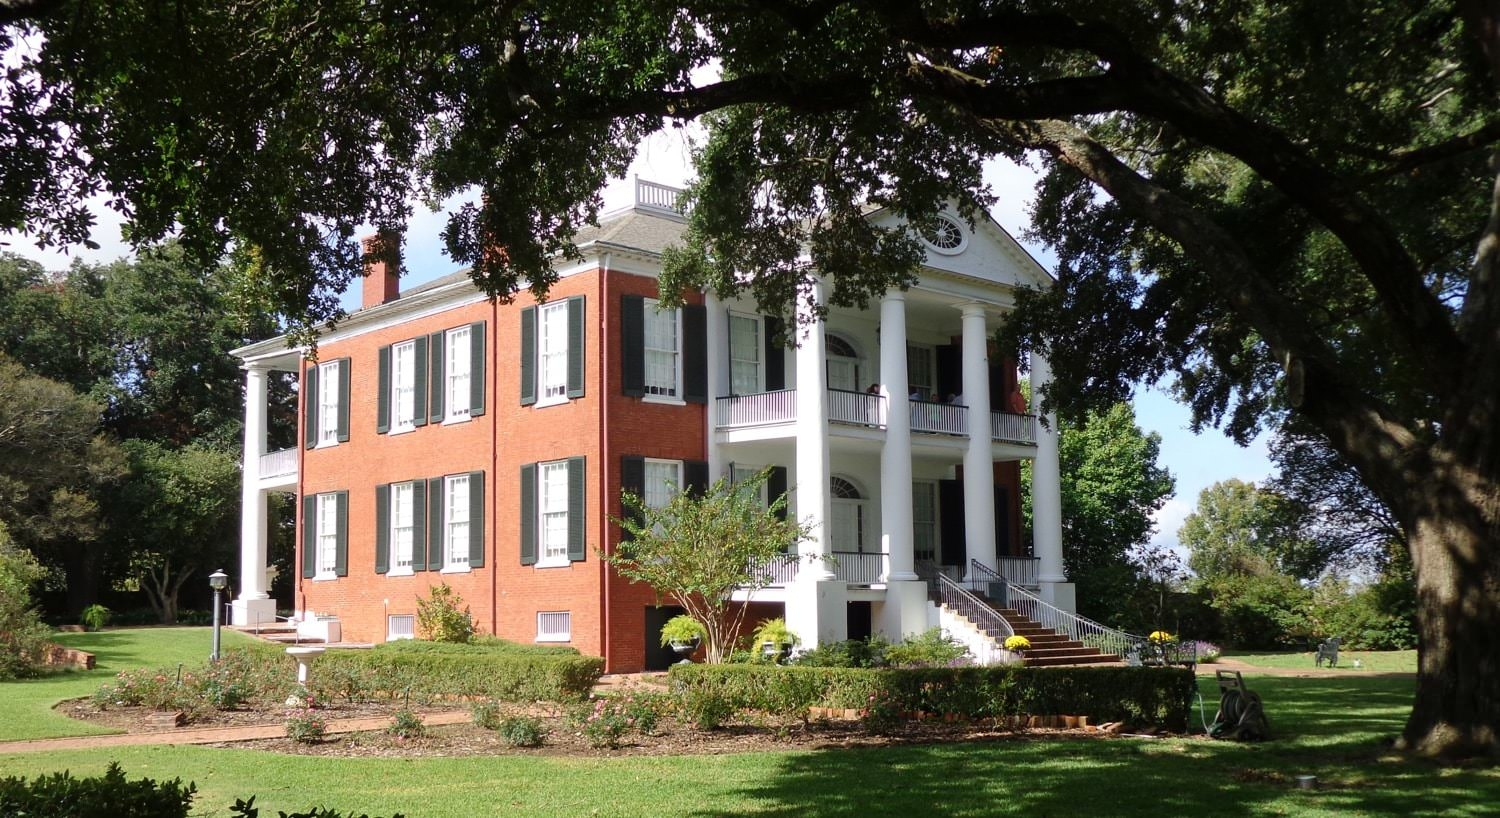 View of a red brick b&b with white pillars and many windows with black shutters overlooking bright green lawn